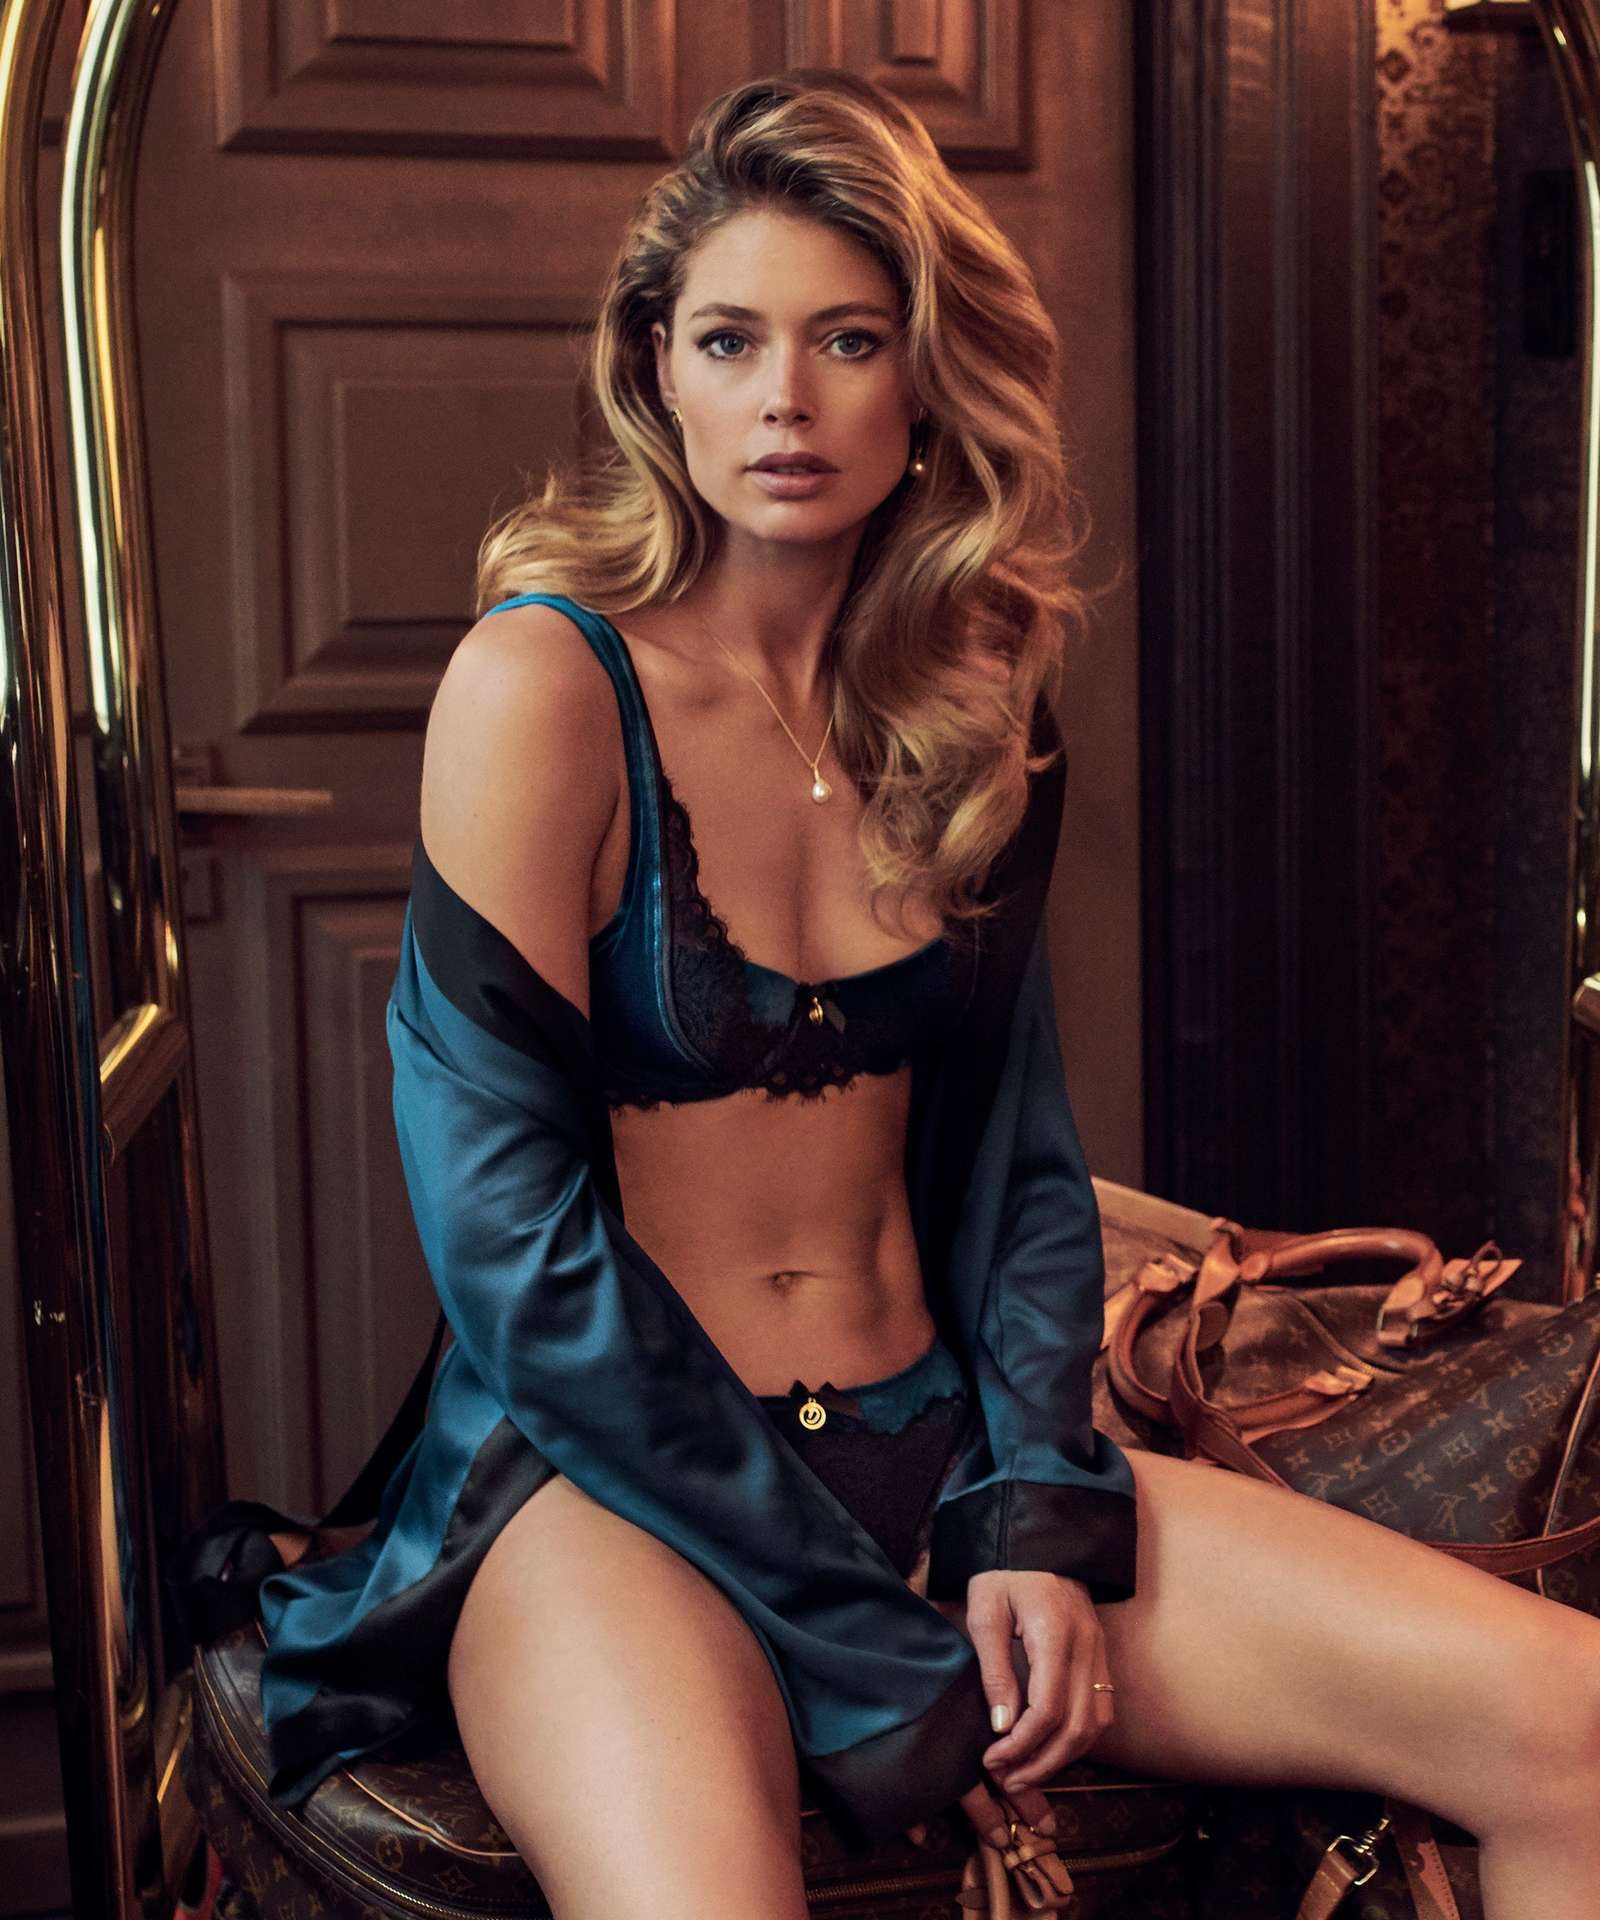 Doutzen-Kroes-in-Hunkemöller-Doutzens-Stories-Collection-2018-9.jpg